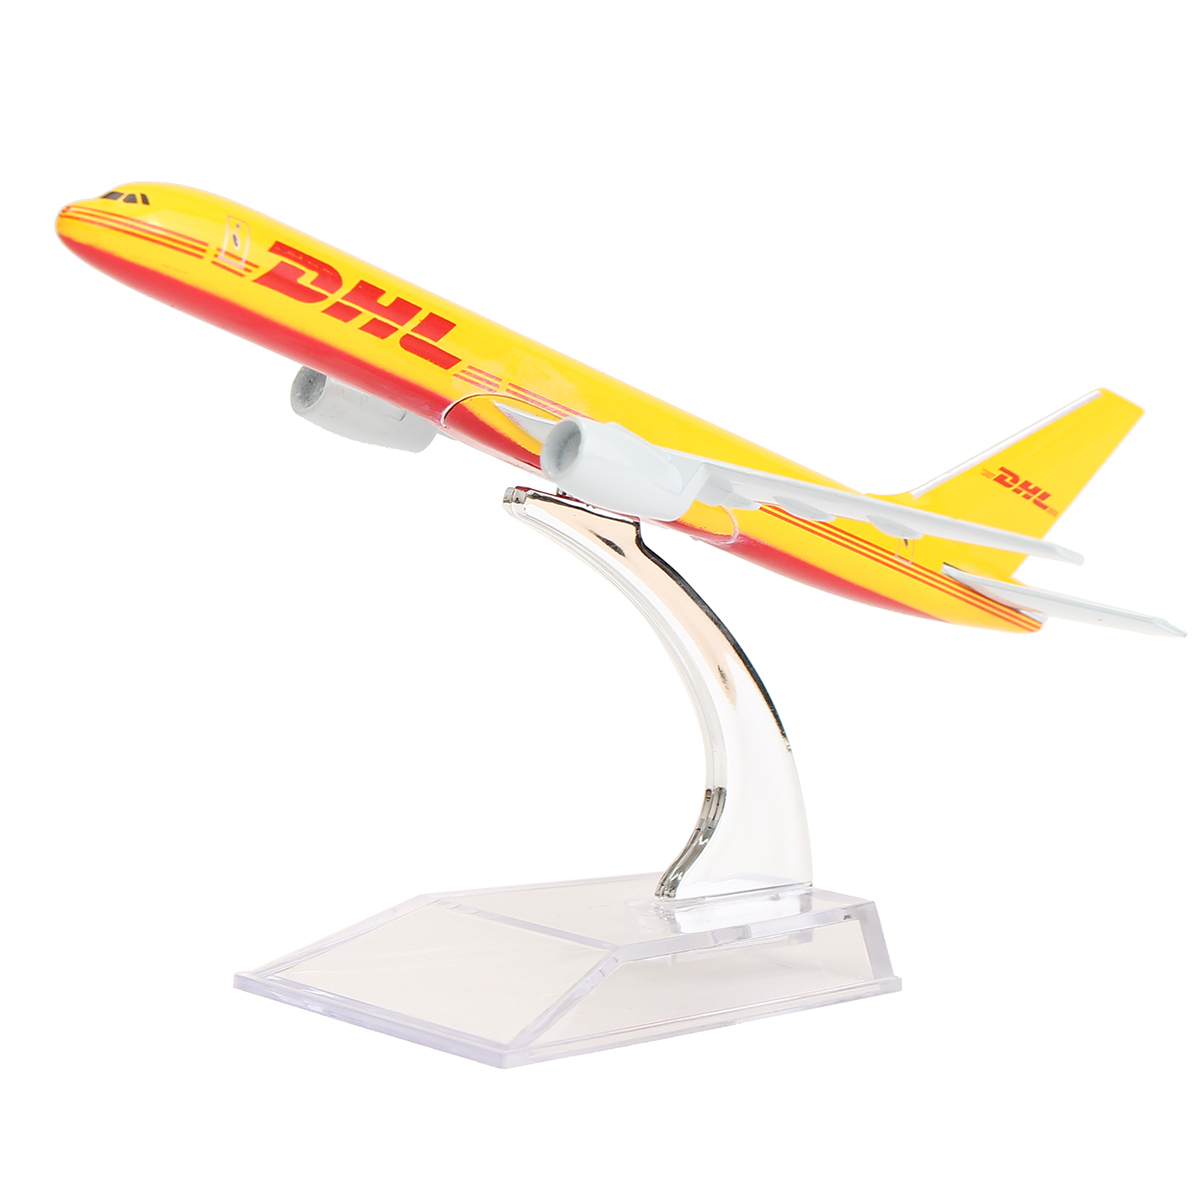 Airplane 16cm Metal Plane Model Aircraft B757 DHL Kargo Aeroplane Scale Desk Diecast Alloy Toys